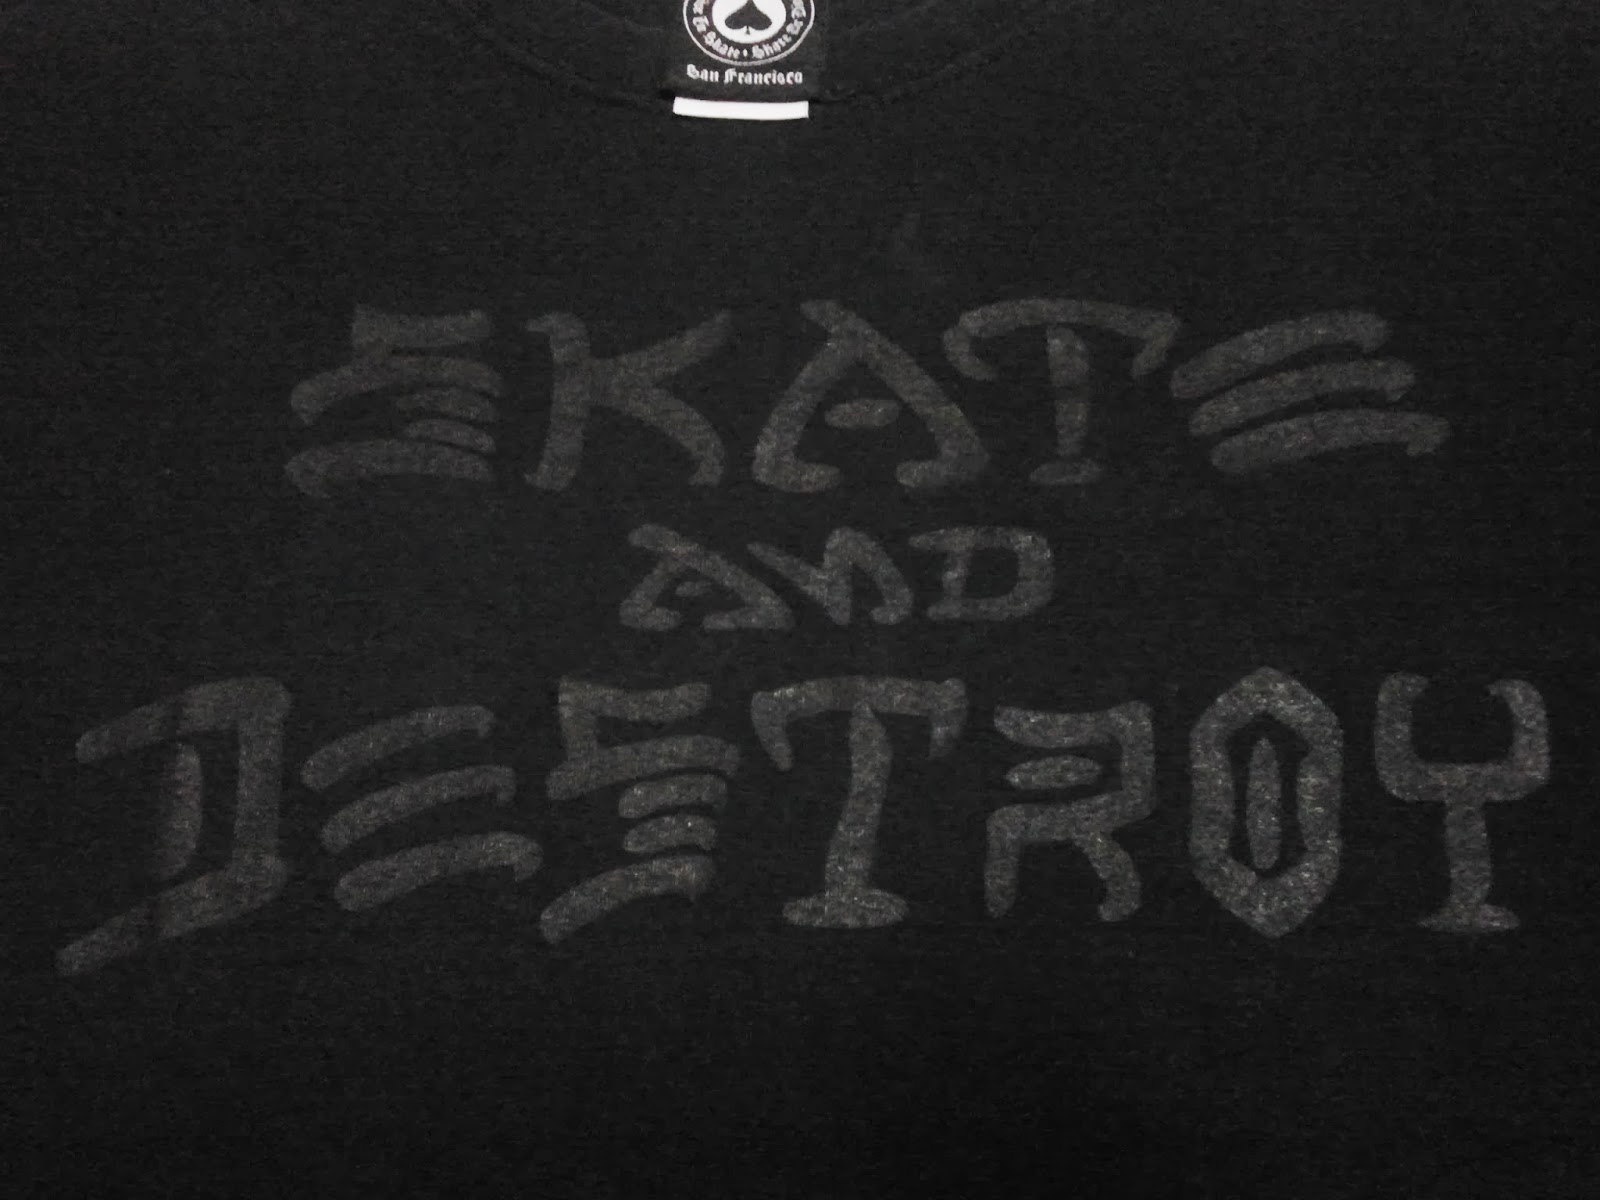 Skate And Destroy Wallpaper | www.imgkid.com - The Image ...